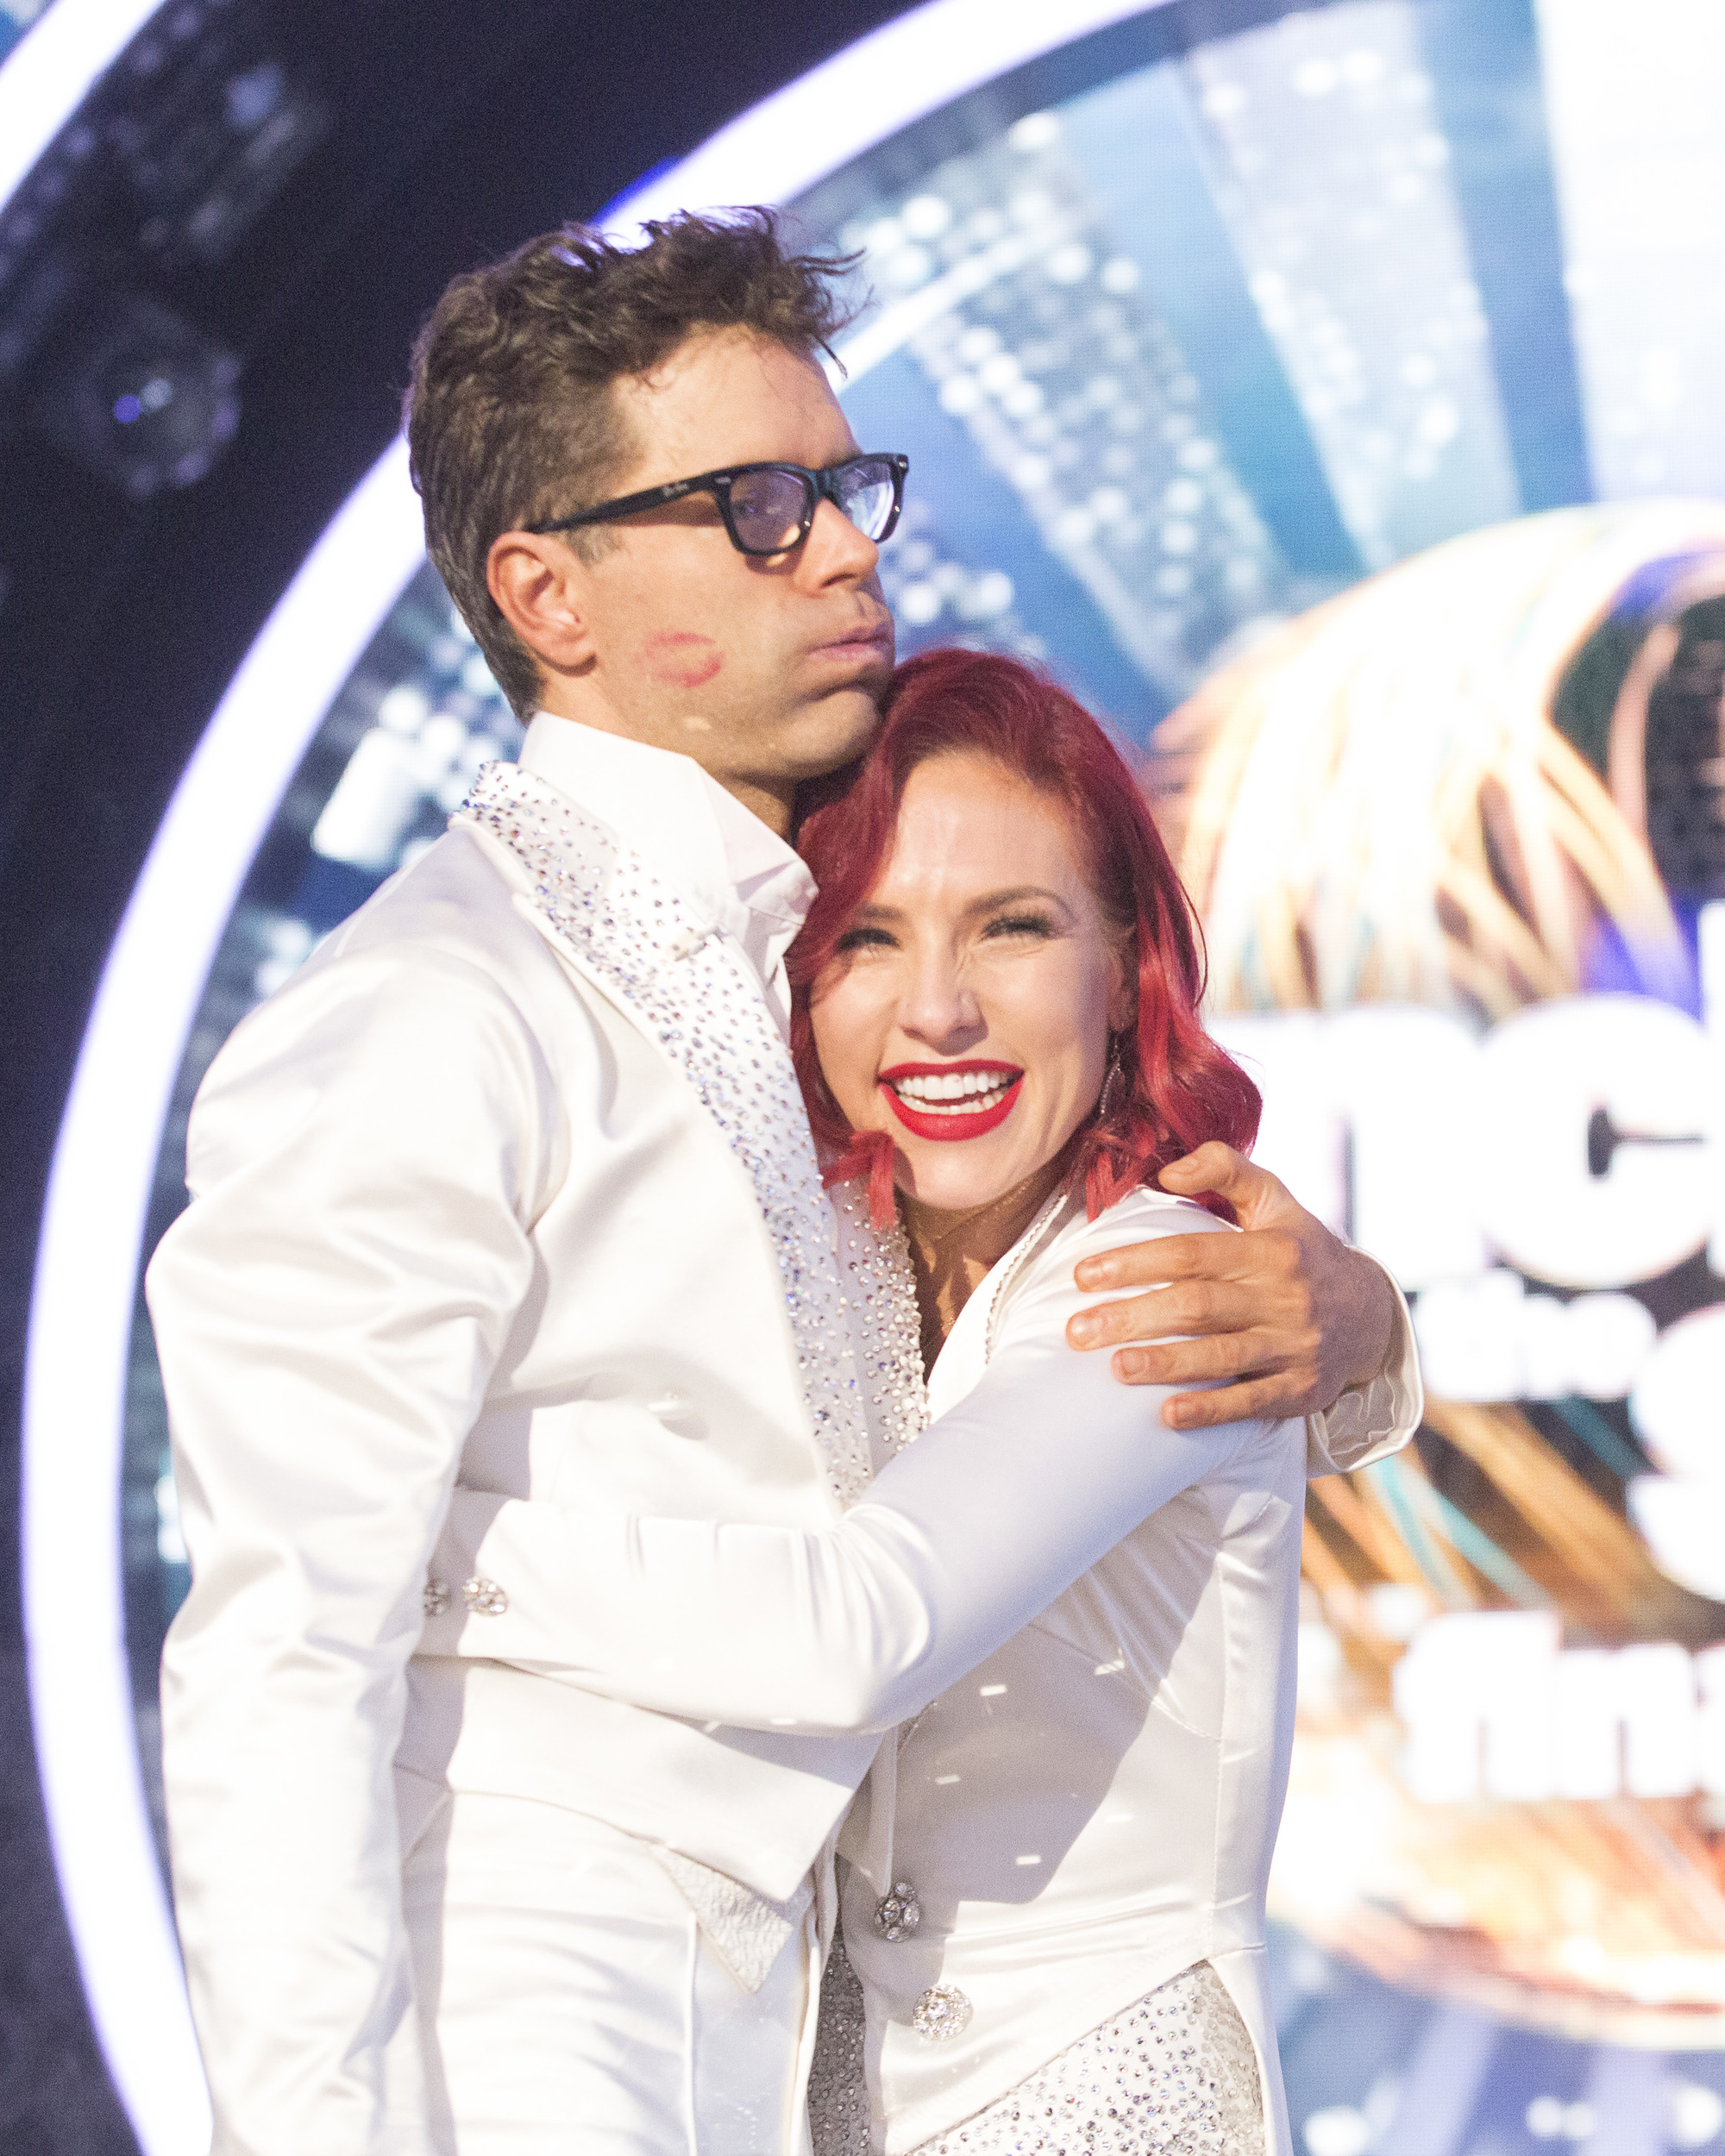 DWTS shocker: ABC skips spring cycle after controversial season 27